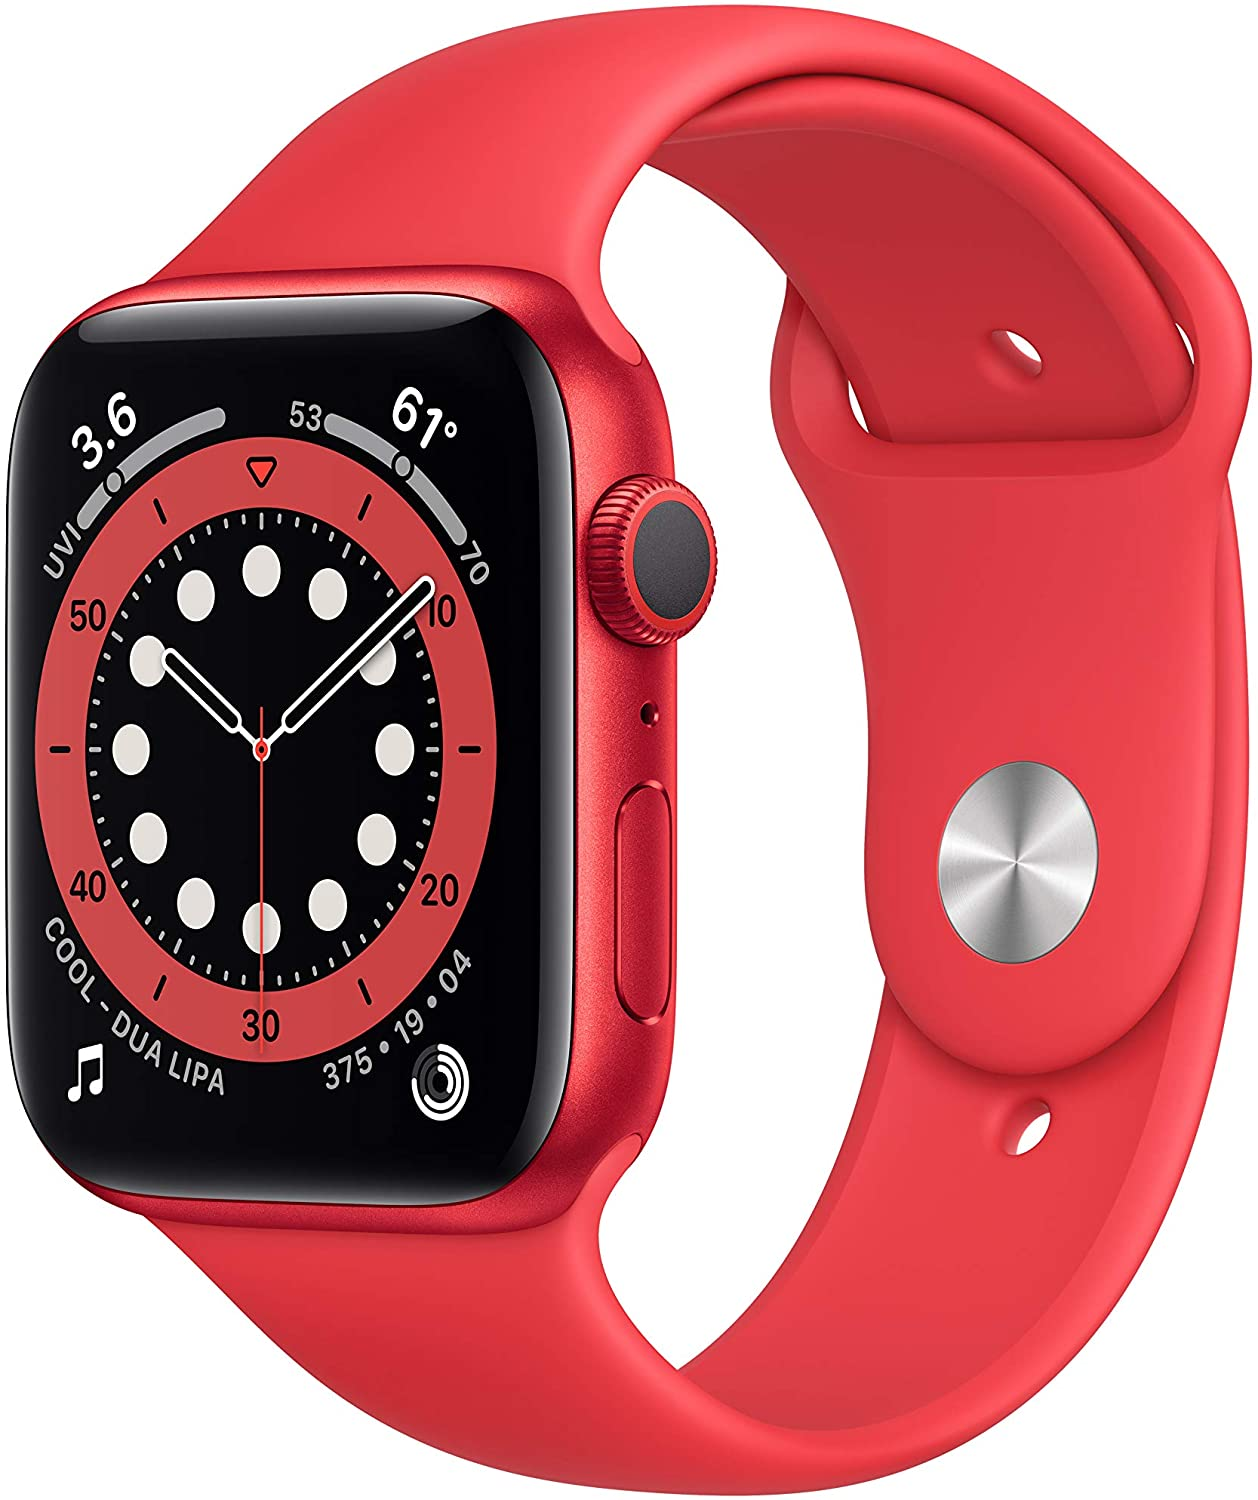 Apple Watch Series 6 in United States